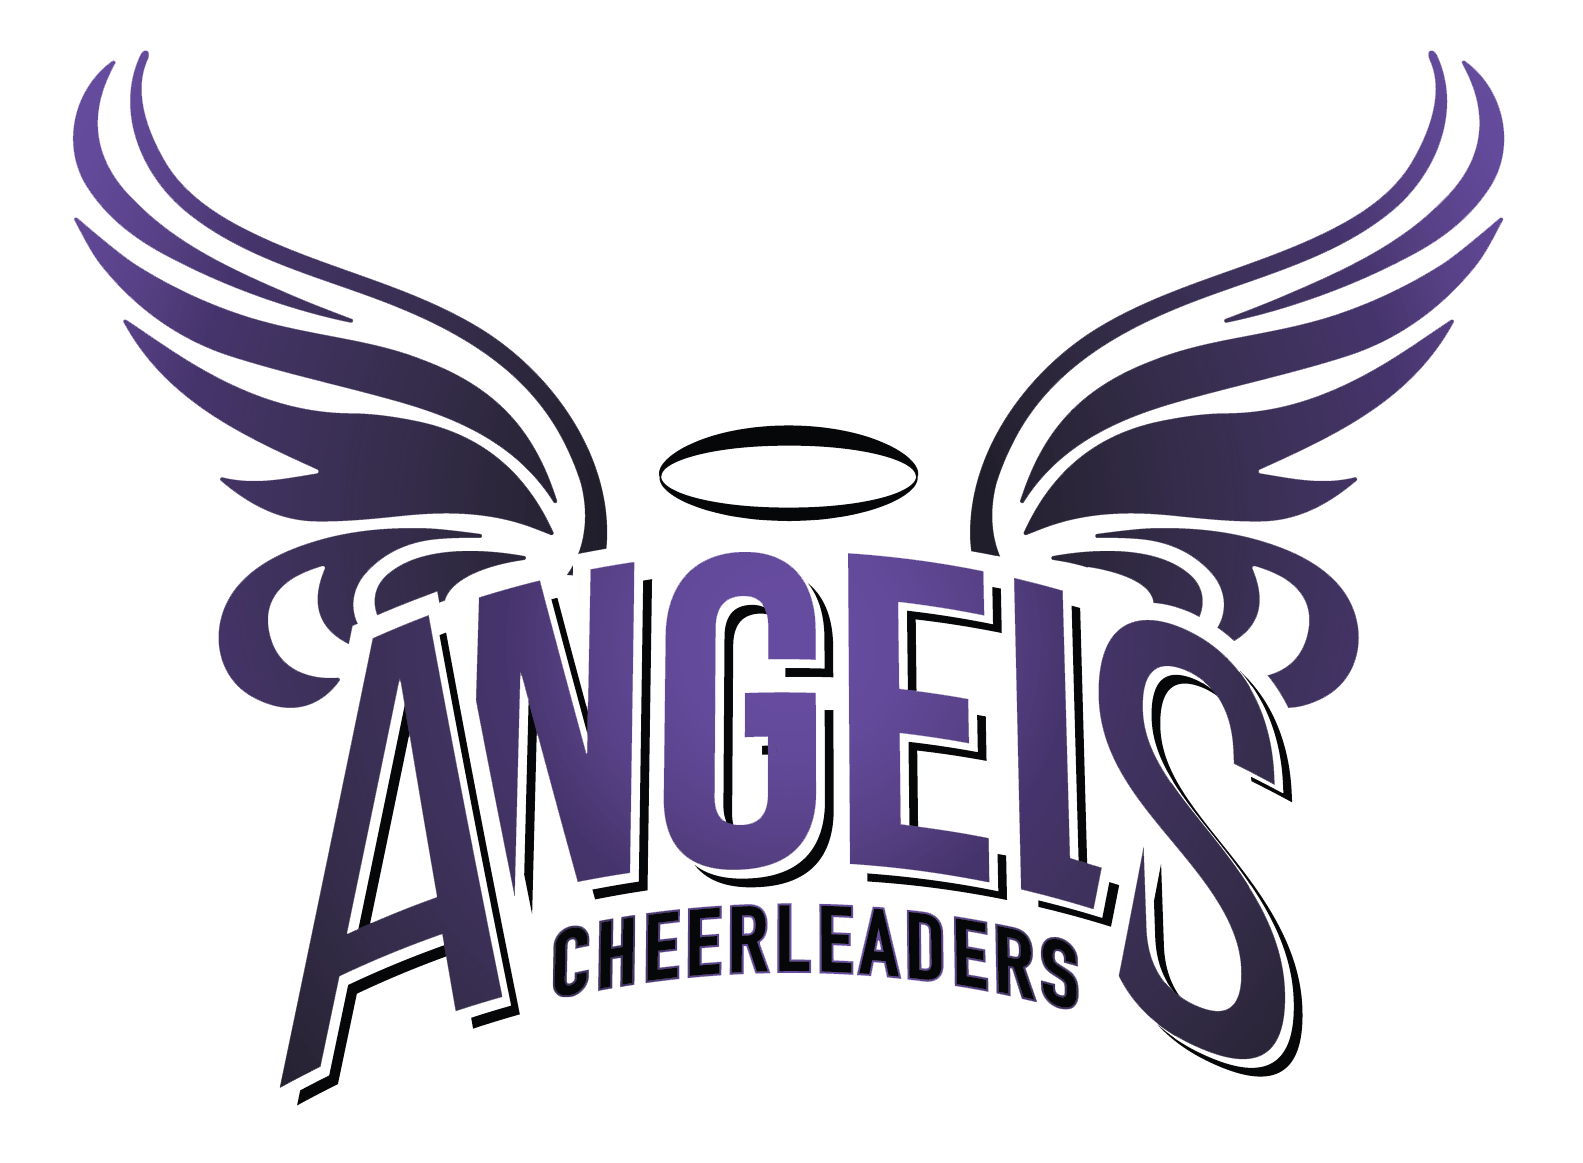 Lausanne Angels Cheerleaders Mobile Retina Logo